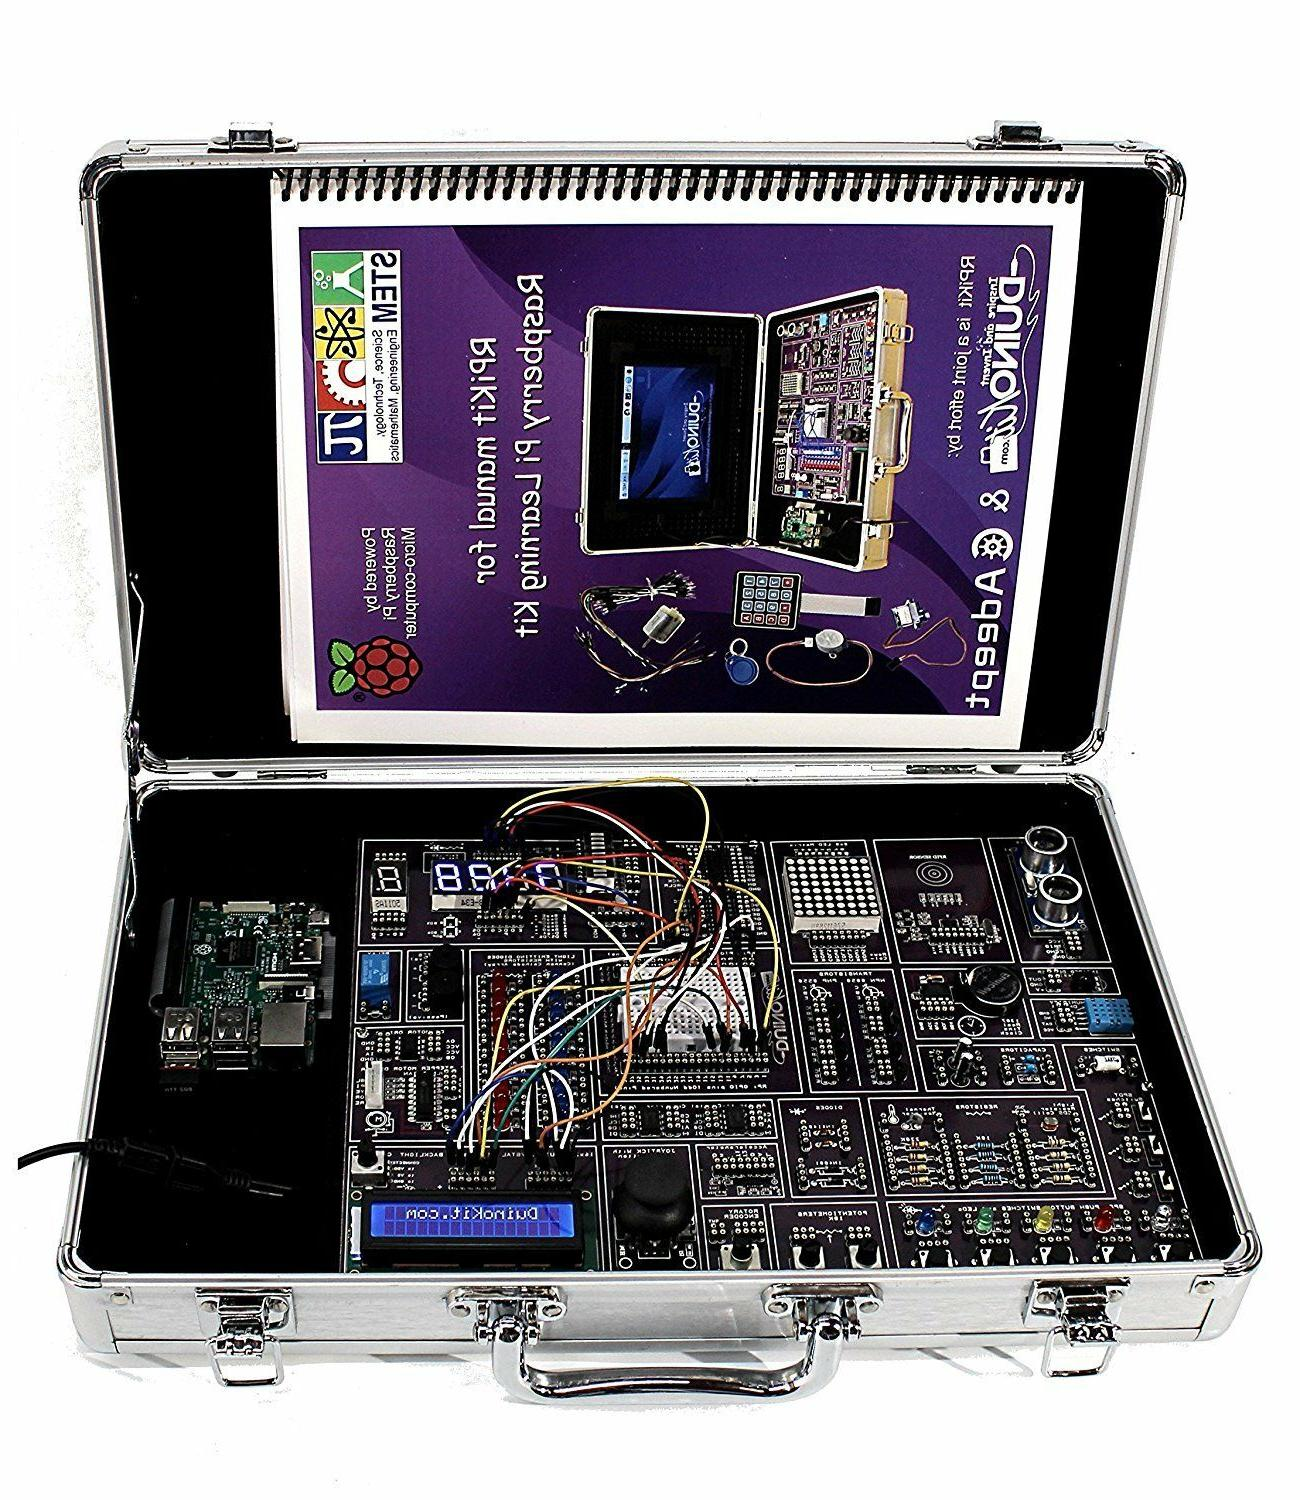 RPiKit - Raspberry Pi Arduino Learning Kit with RFID Module